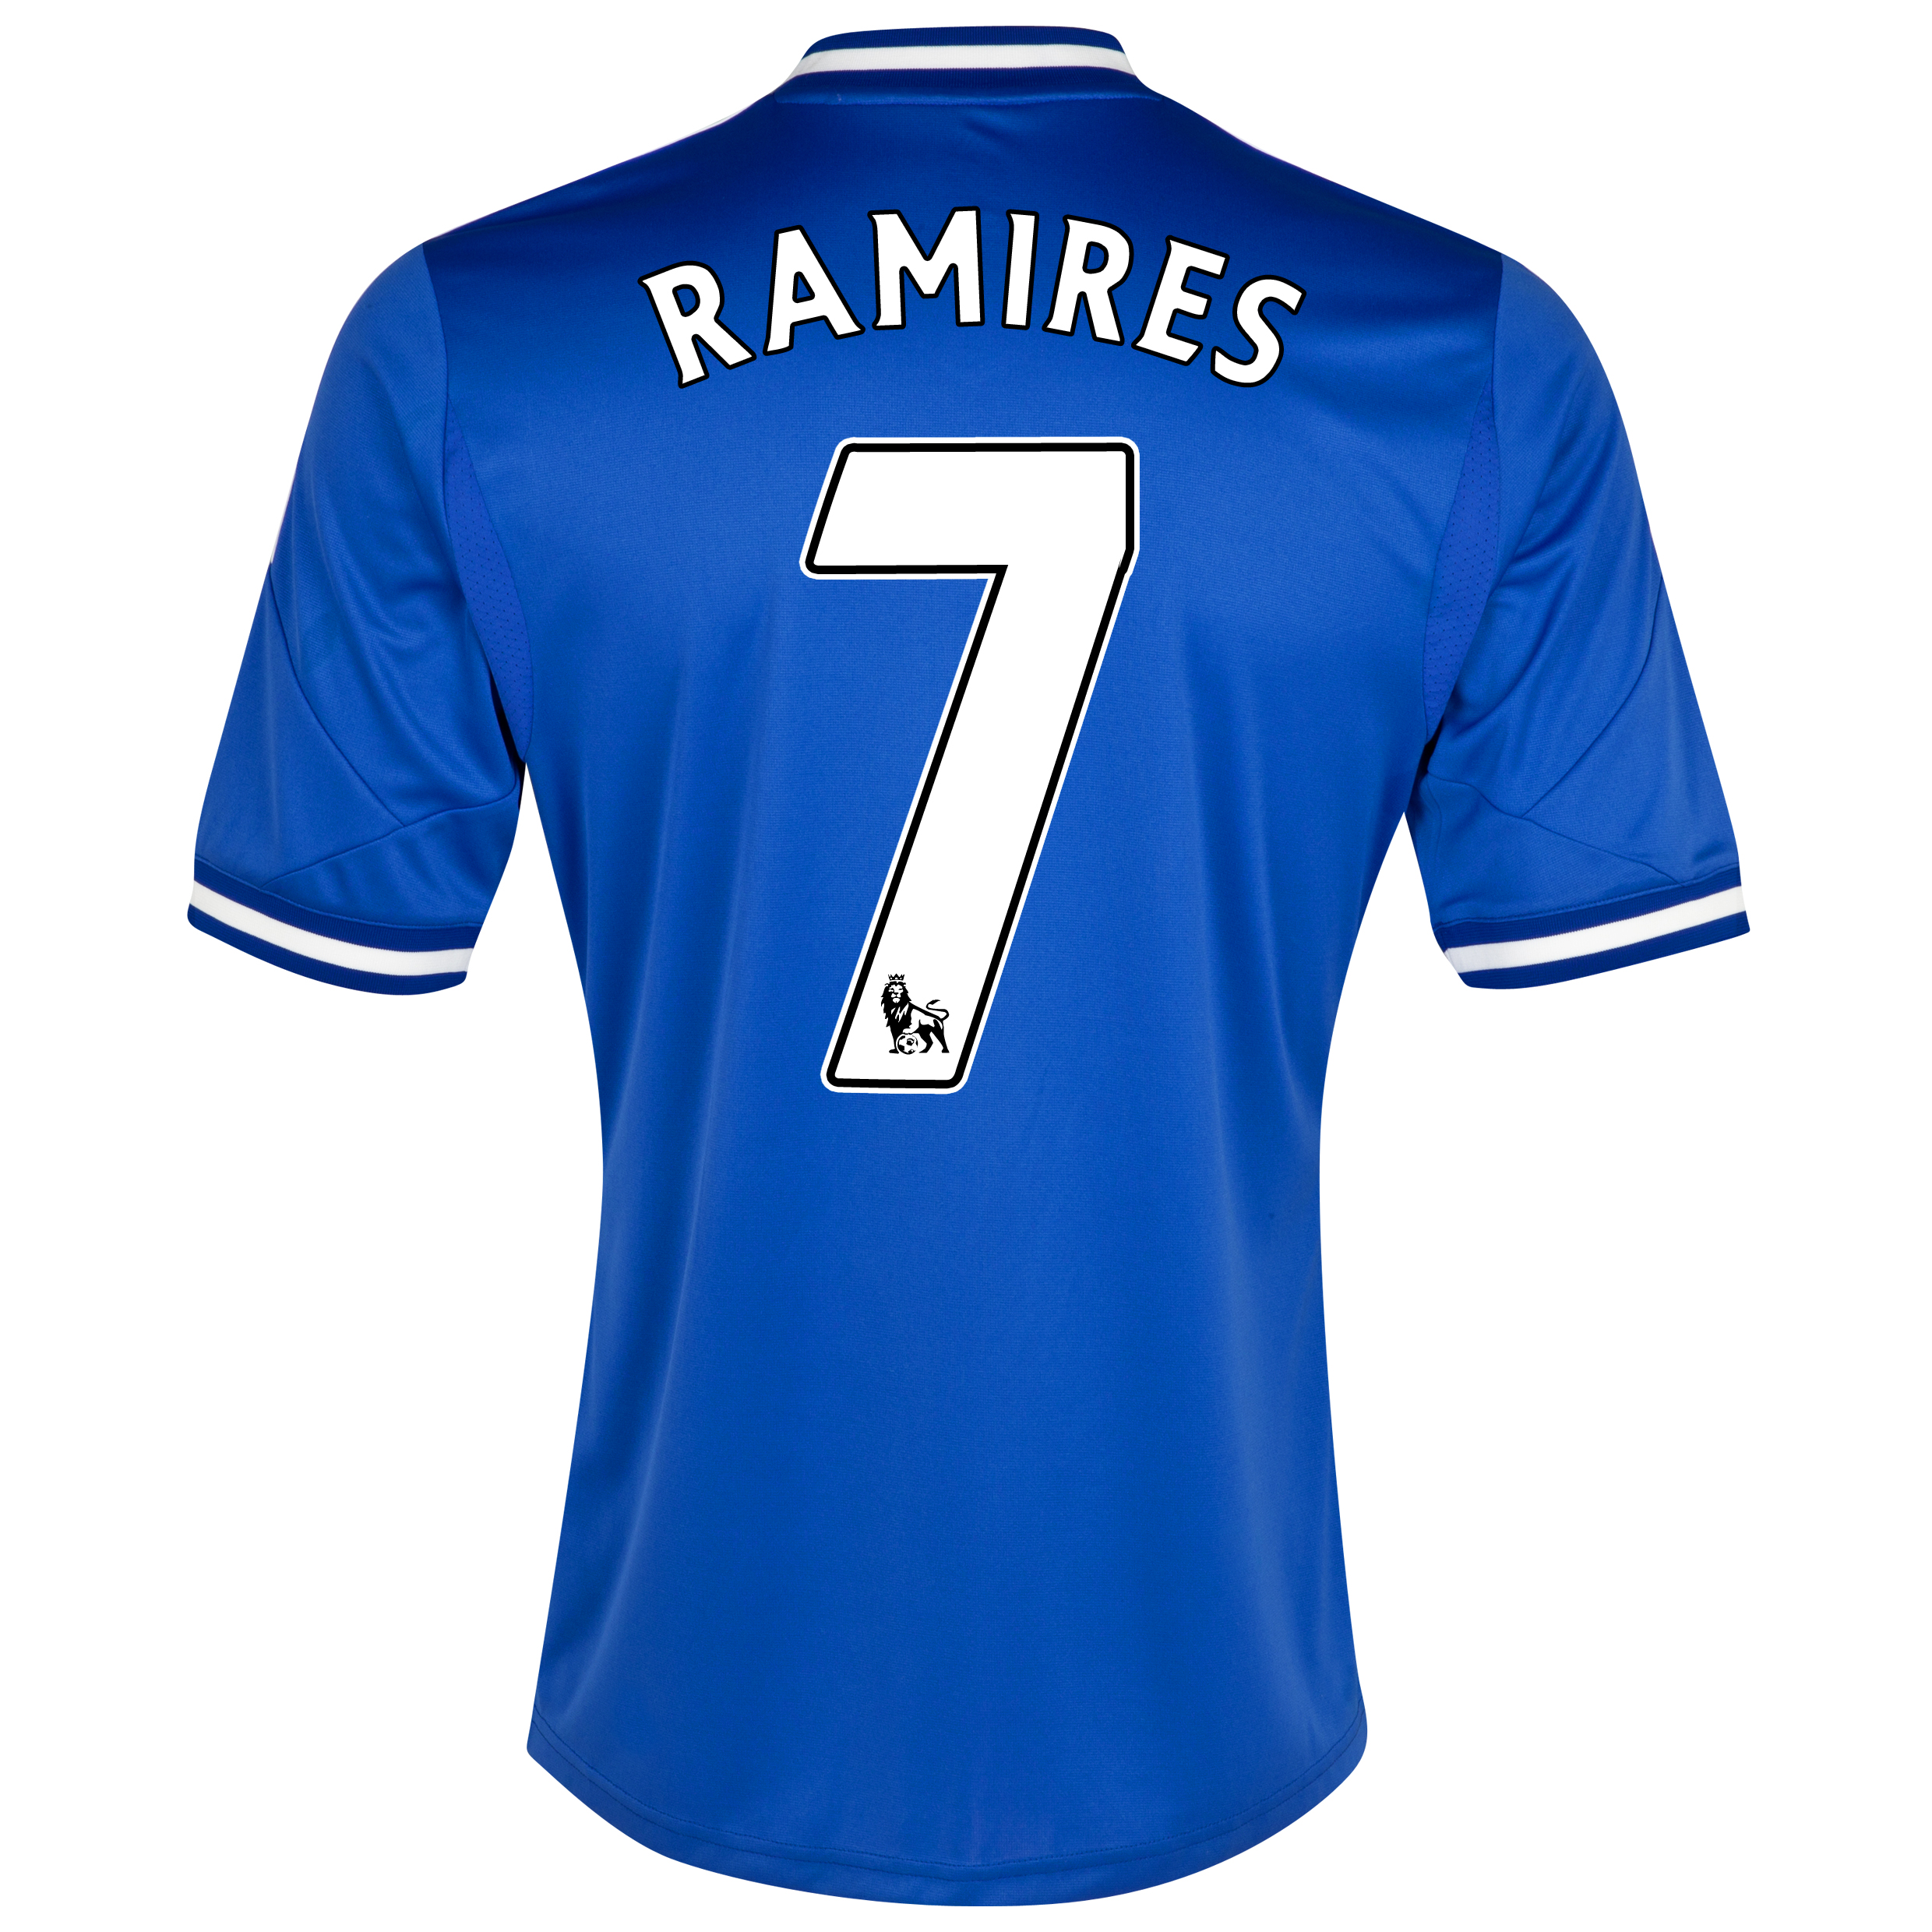 Chelsea Home Shirt 2013/14 with Ramires 7 printing